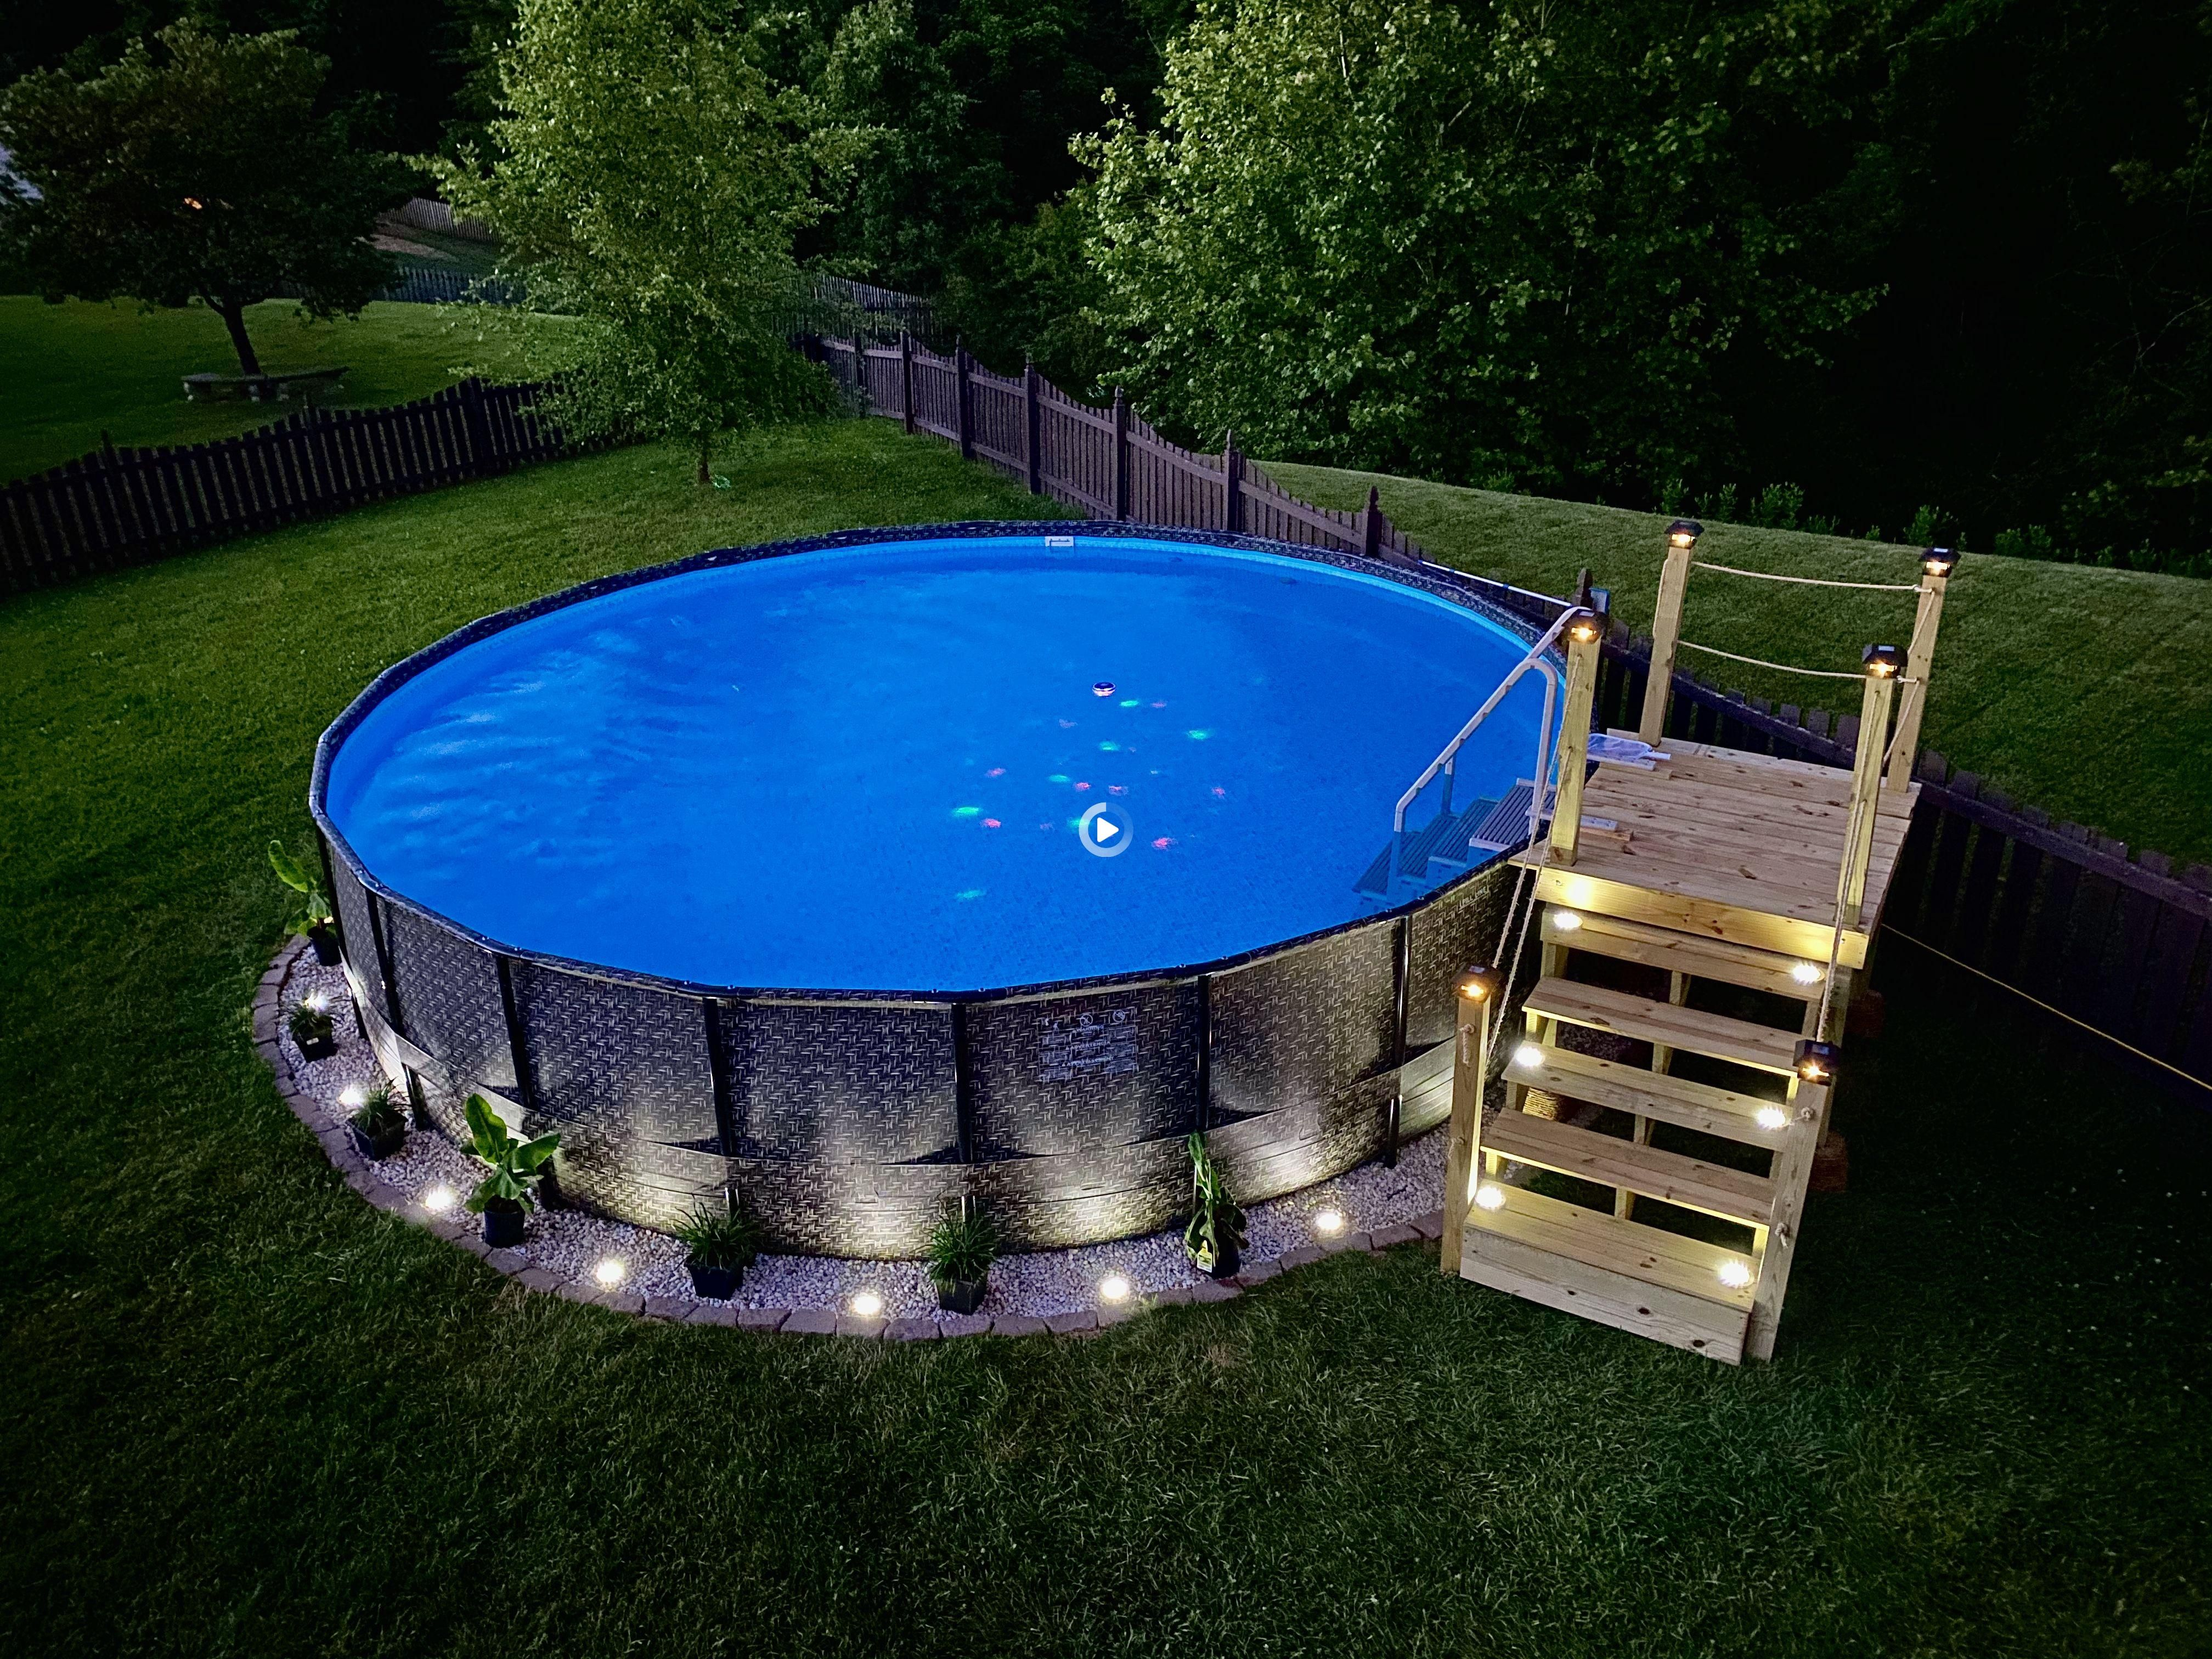 Pin On Eye Makeup Backyard landscaping ideas with above ground pool